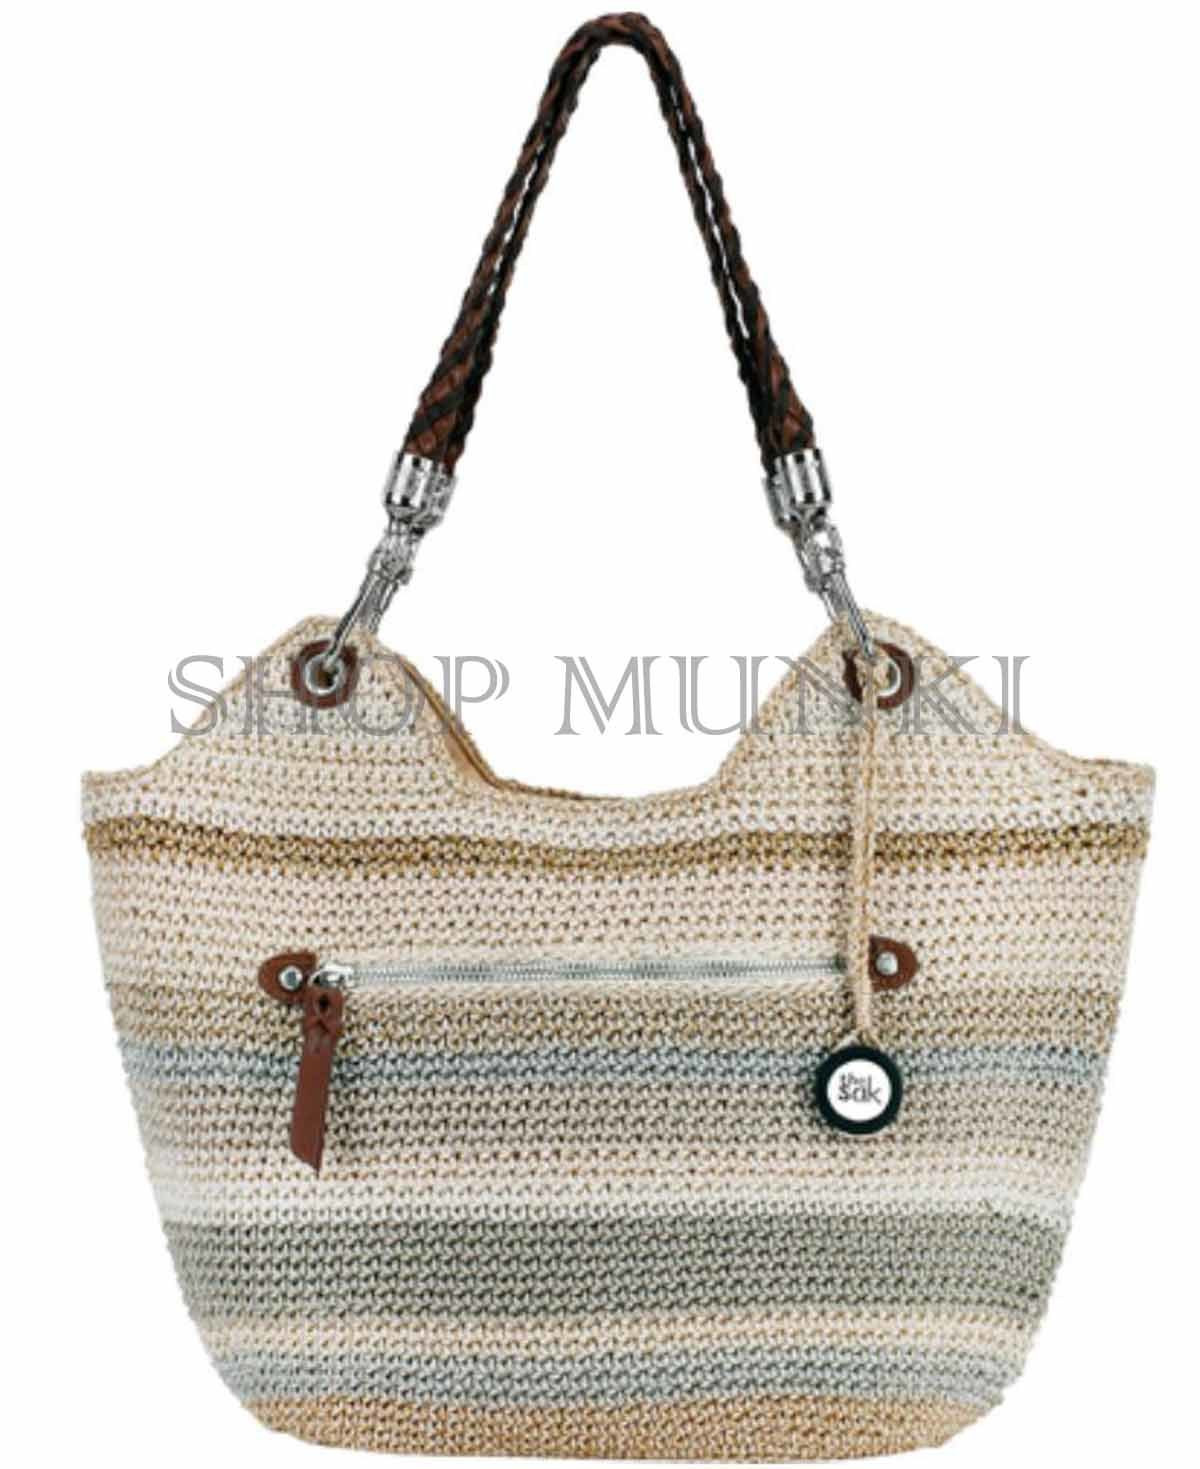 Crochet Bags for Sale Awesome the Sak Indio Crochet Satchel Hand Bag Purse On Sale Of Awesome 42 Models Crochet Bags for Sale